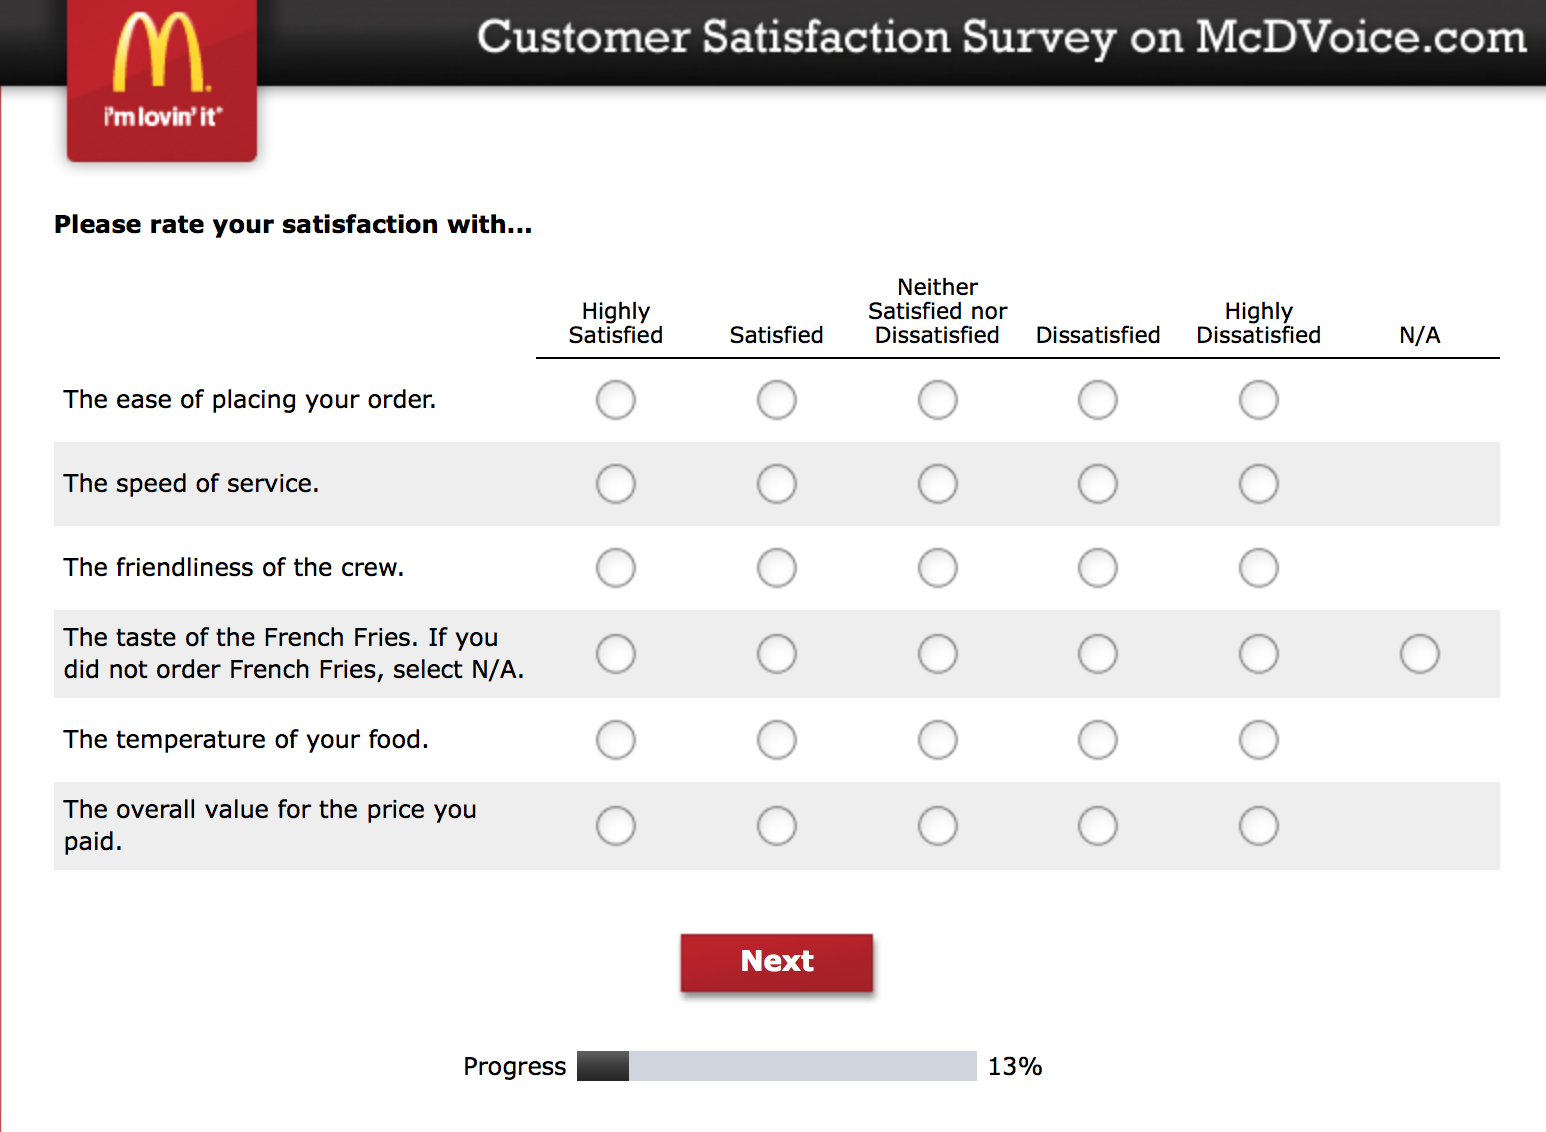 Mcdvoice.com Customer Survey 5